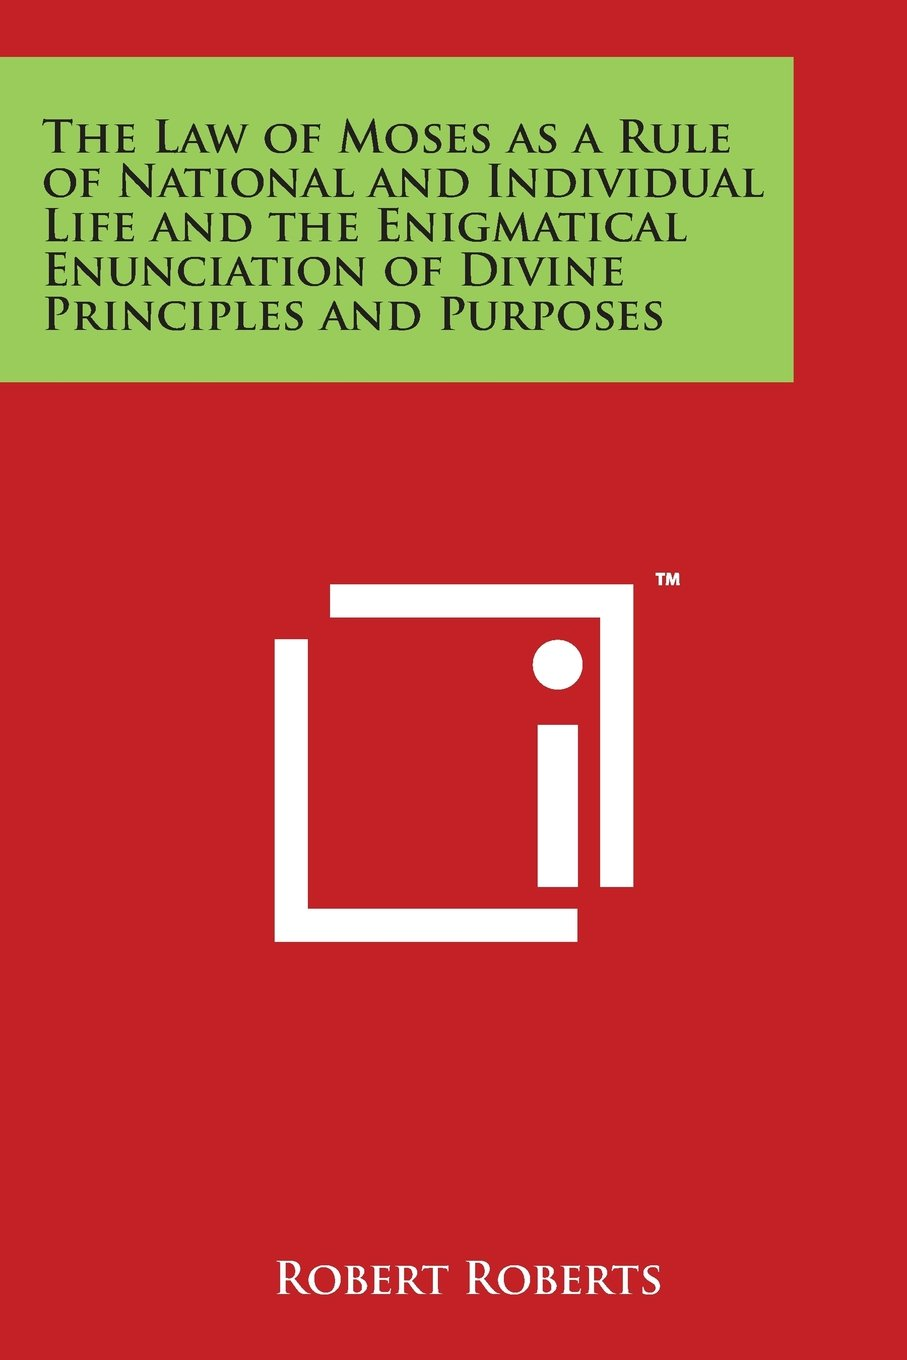 The Law of Moses as a Rule of National and Individual Life and the Enigmatical Enunciation of Divine Principles and Purposes PDF